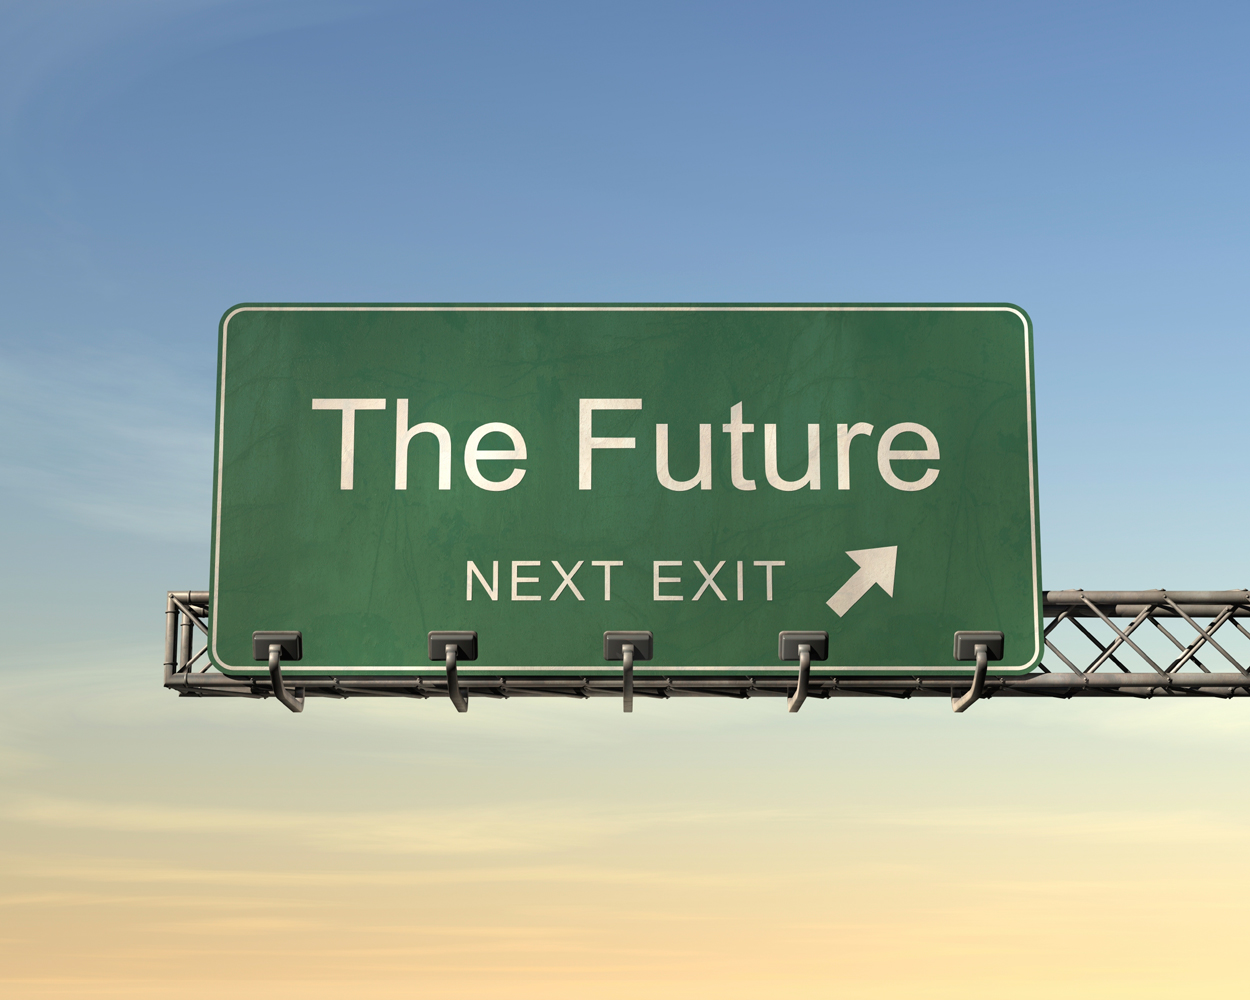 The Future Next Exit Sign 2898.06 Kb